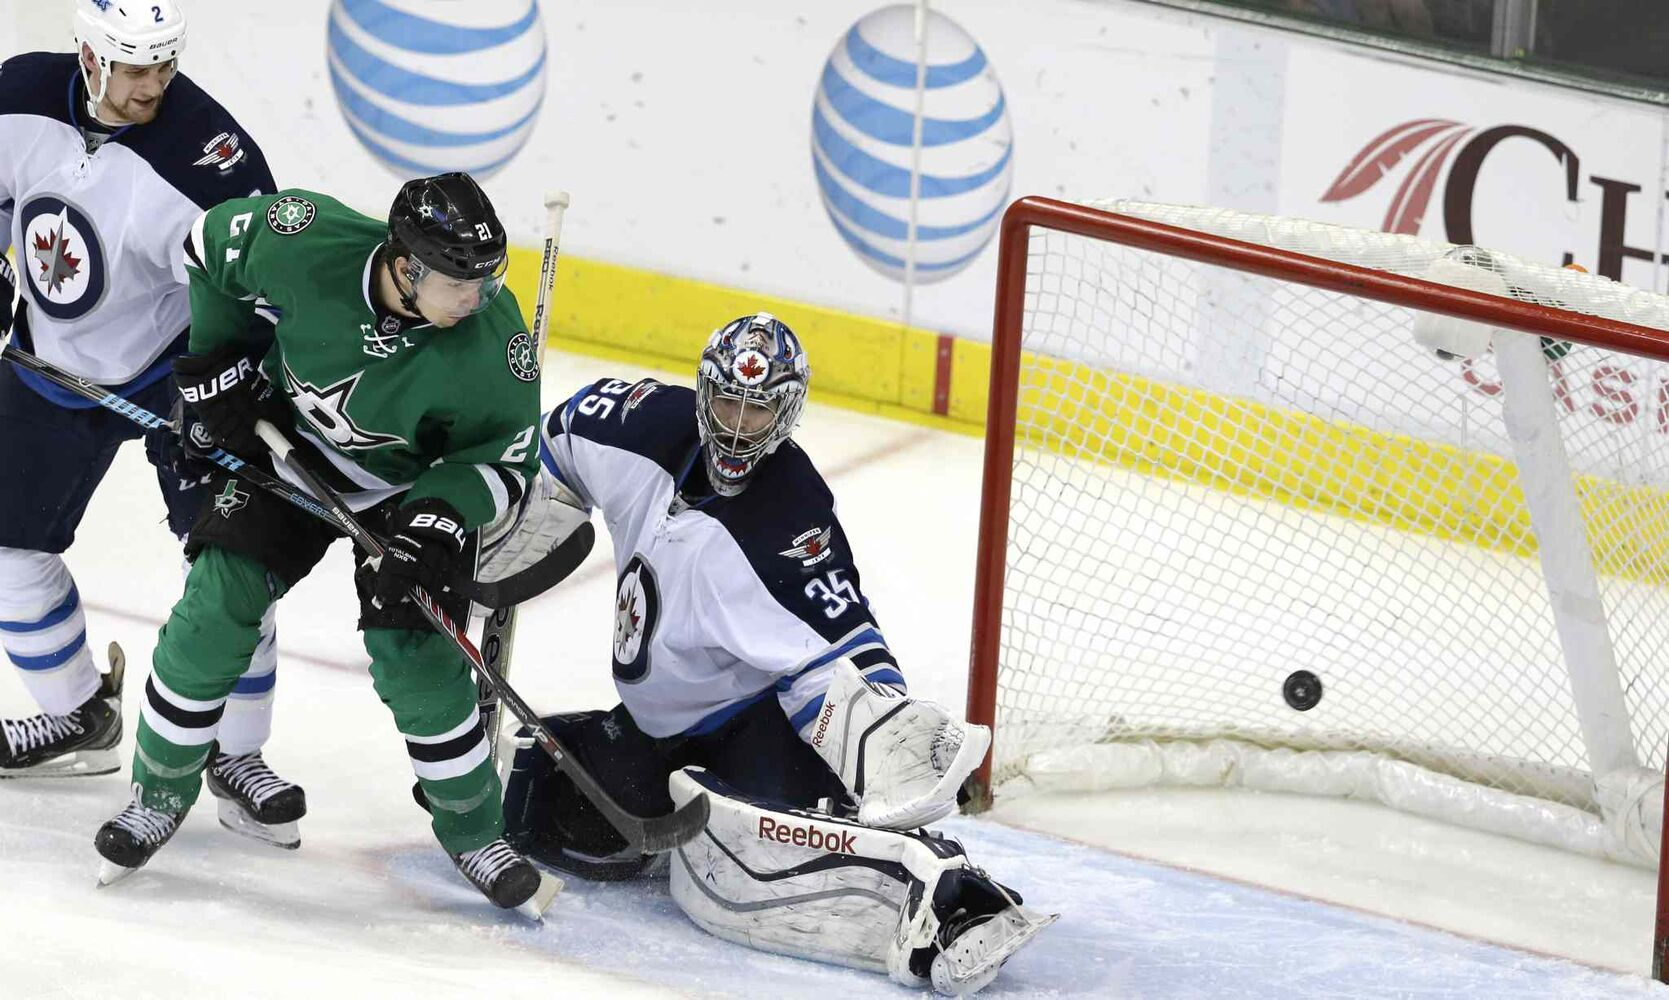 Dallas Stars left-winger Antoine Roussel (21) watches his shot go wide of  the net against Winnipeg Jets goalie Al Montoya and defenceman Adam Pardy during the second period. (L.M. OTERO / THE ASSOCIATED PRESS)